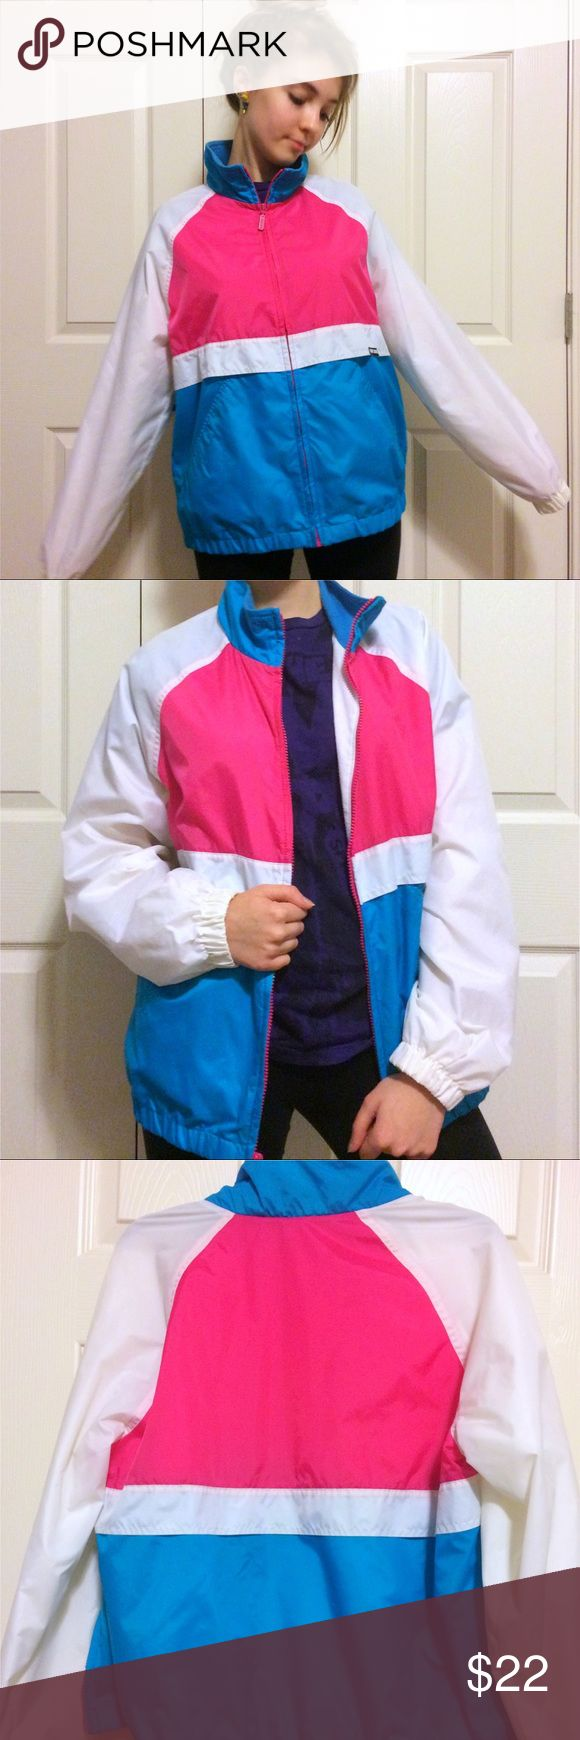 Cabin Creek Pink Blue and White zip jacket Cabin Creek Pink Blue and White Zip up Jacket with two pockets. Size M.  Shell: 100% Nylon, Lining: 70% polyester 30% cotton, Sleeve: 100% Nylon, Knit 100% Acrylic. Made in the Philippines. Cabin Creek Jackets & Coats Puffers